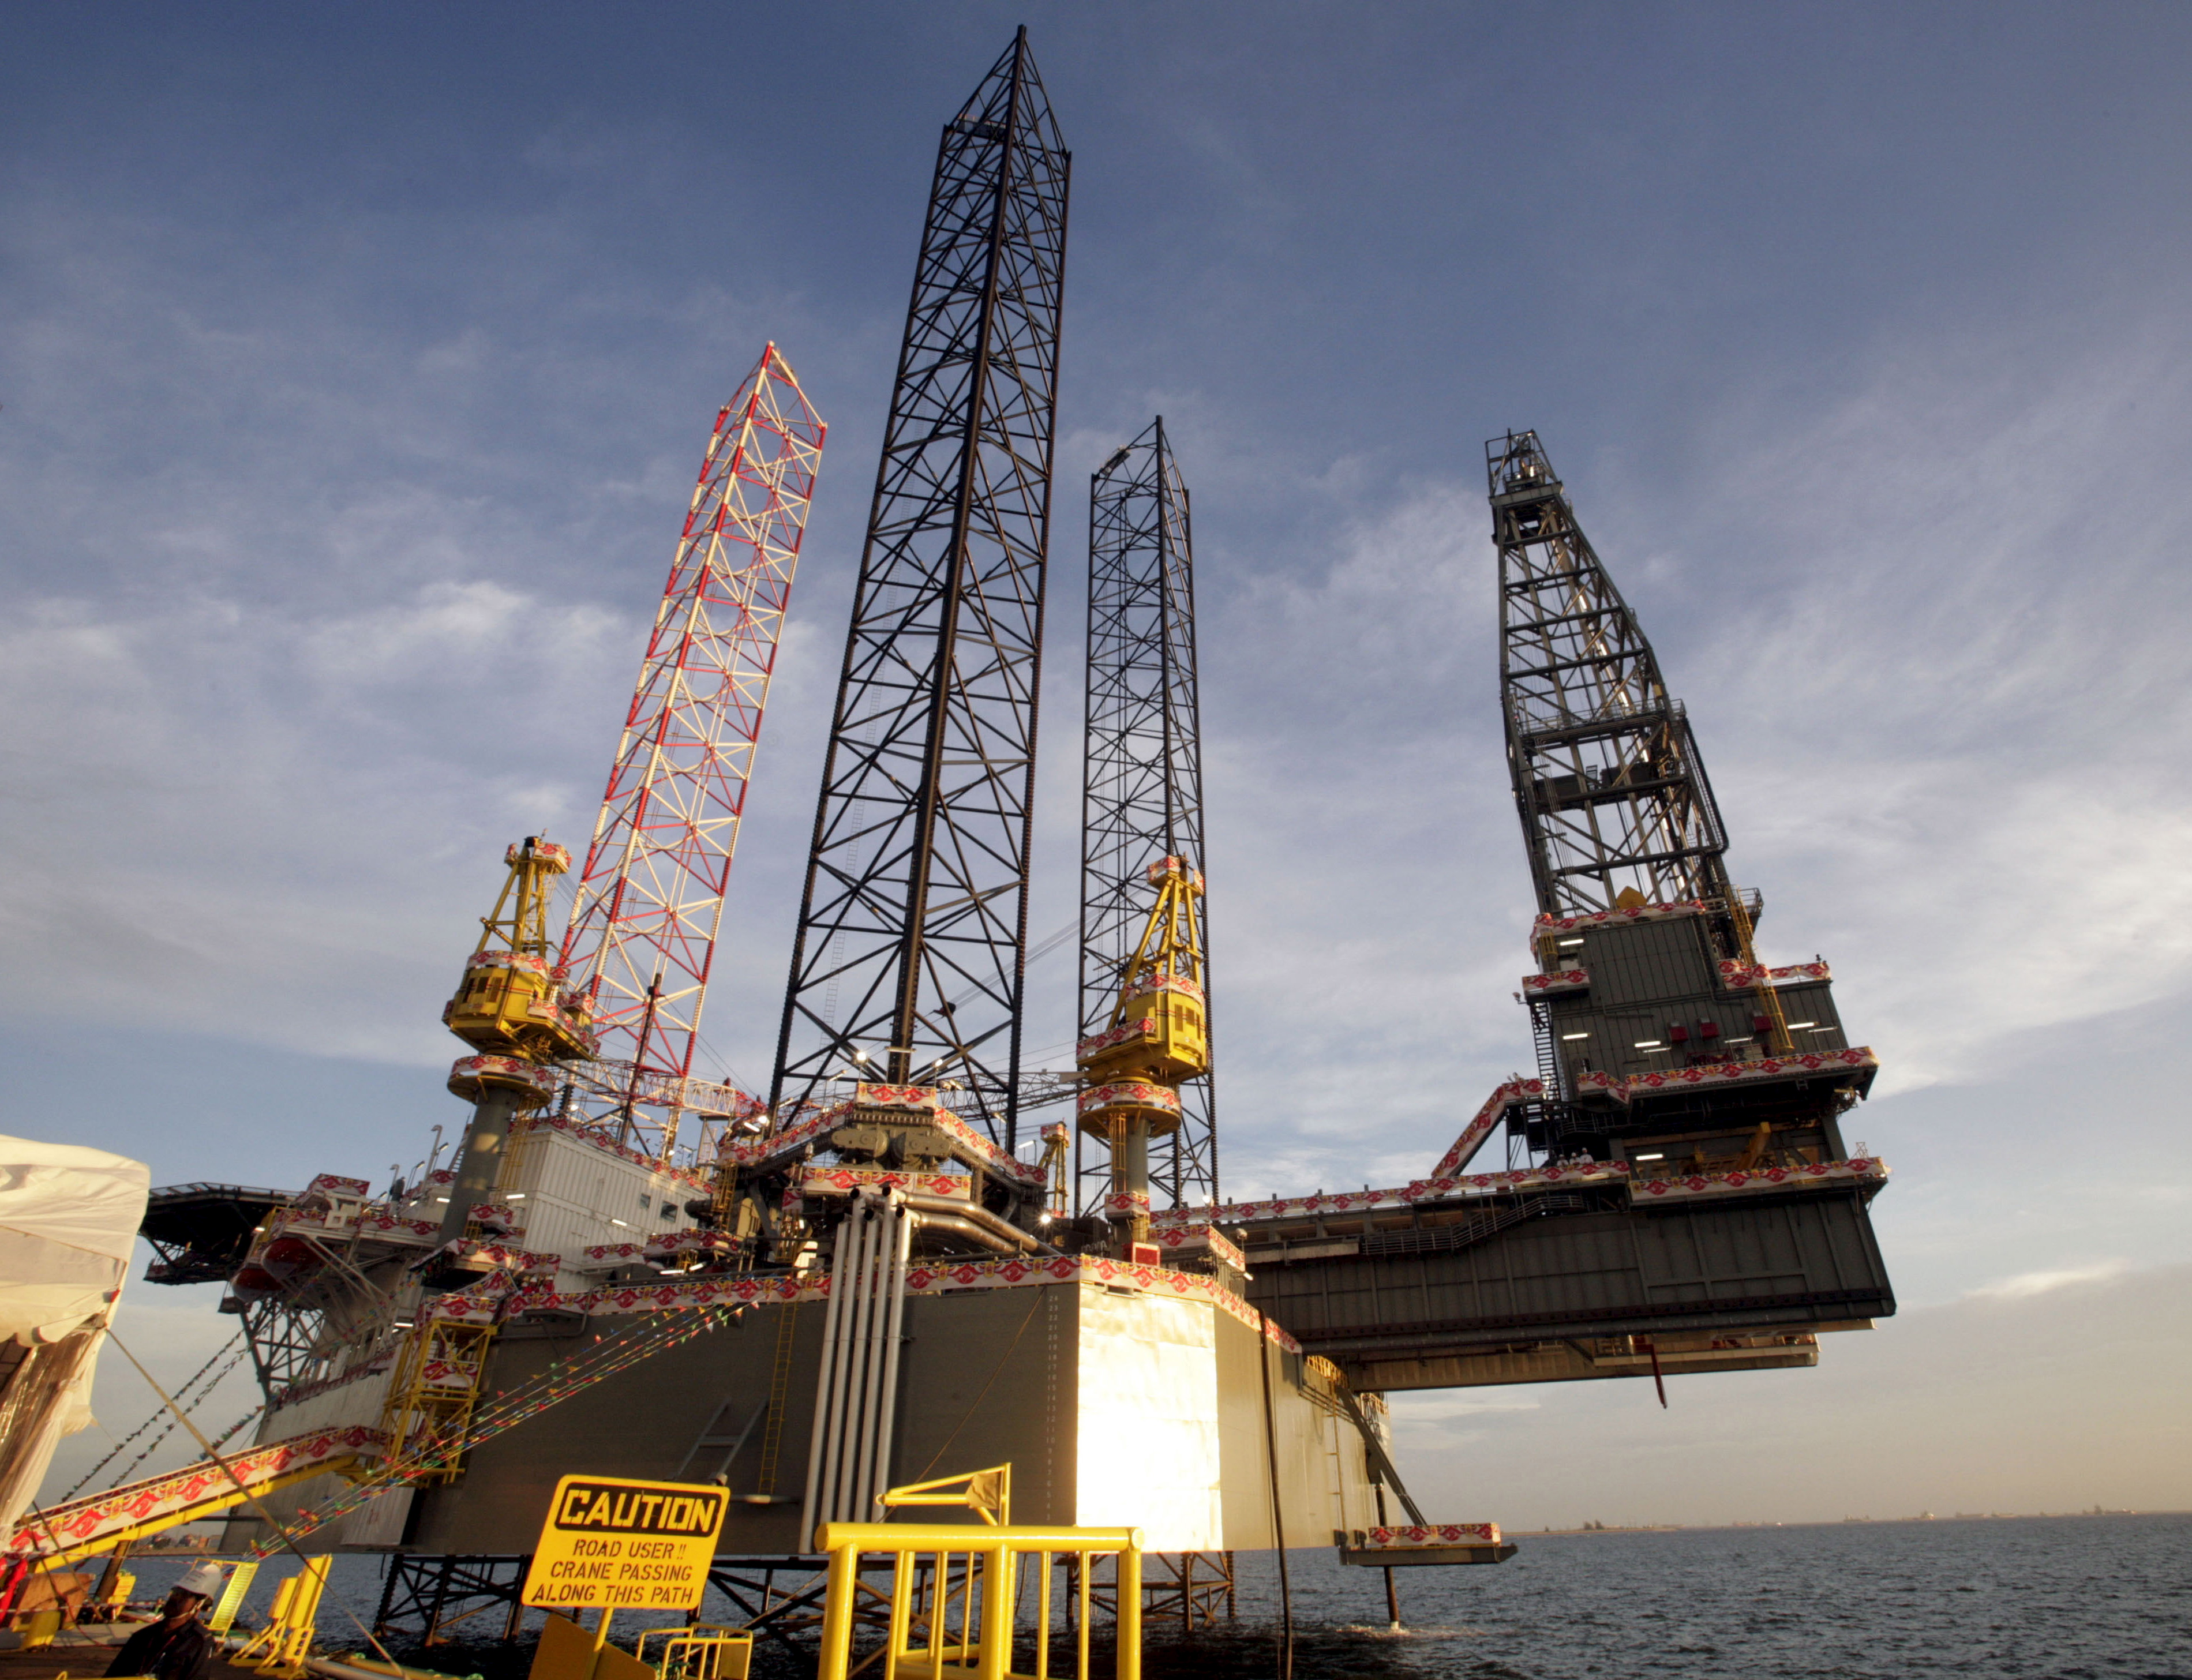 The SEADRILL 3, the first of four oil rigs that Keppel FELS is building for the same customer, is seen in Singapore in this April 21, 2006 file photo.  REUTERS/Luis Enrique Ascui/Files